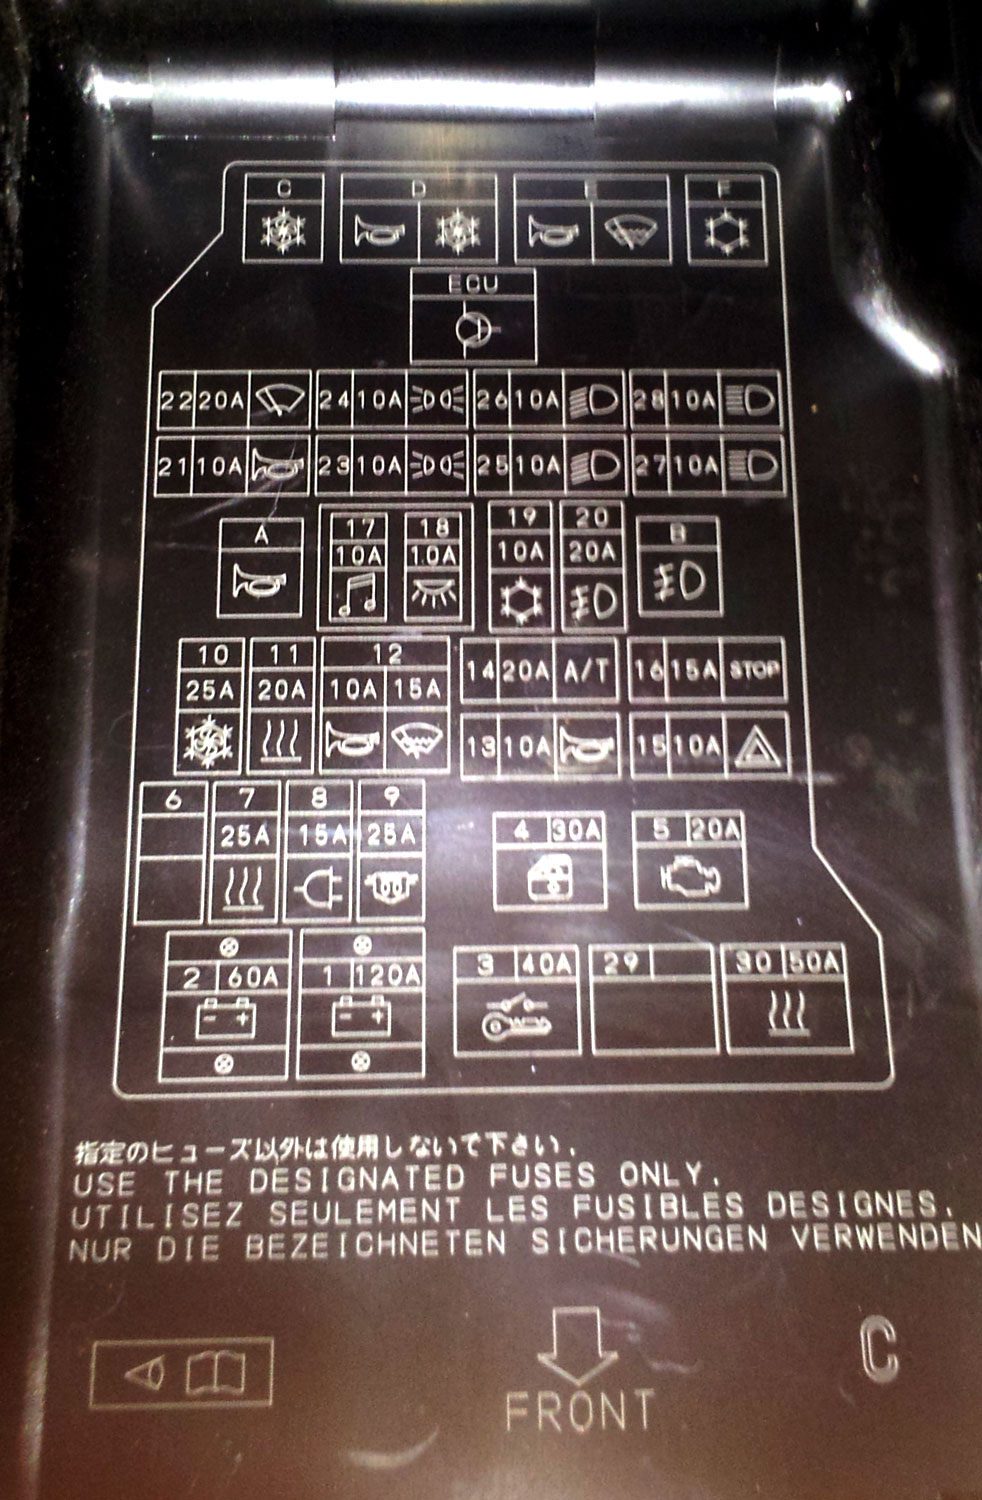 2010 Galant Fuse Box Great Installation Of Wiring Diagram On Mitsubishi Lancer Library Rh 45 Bloxhuette De